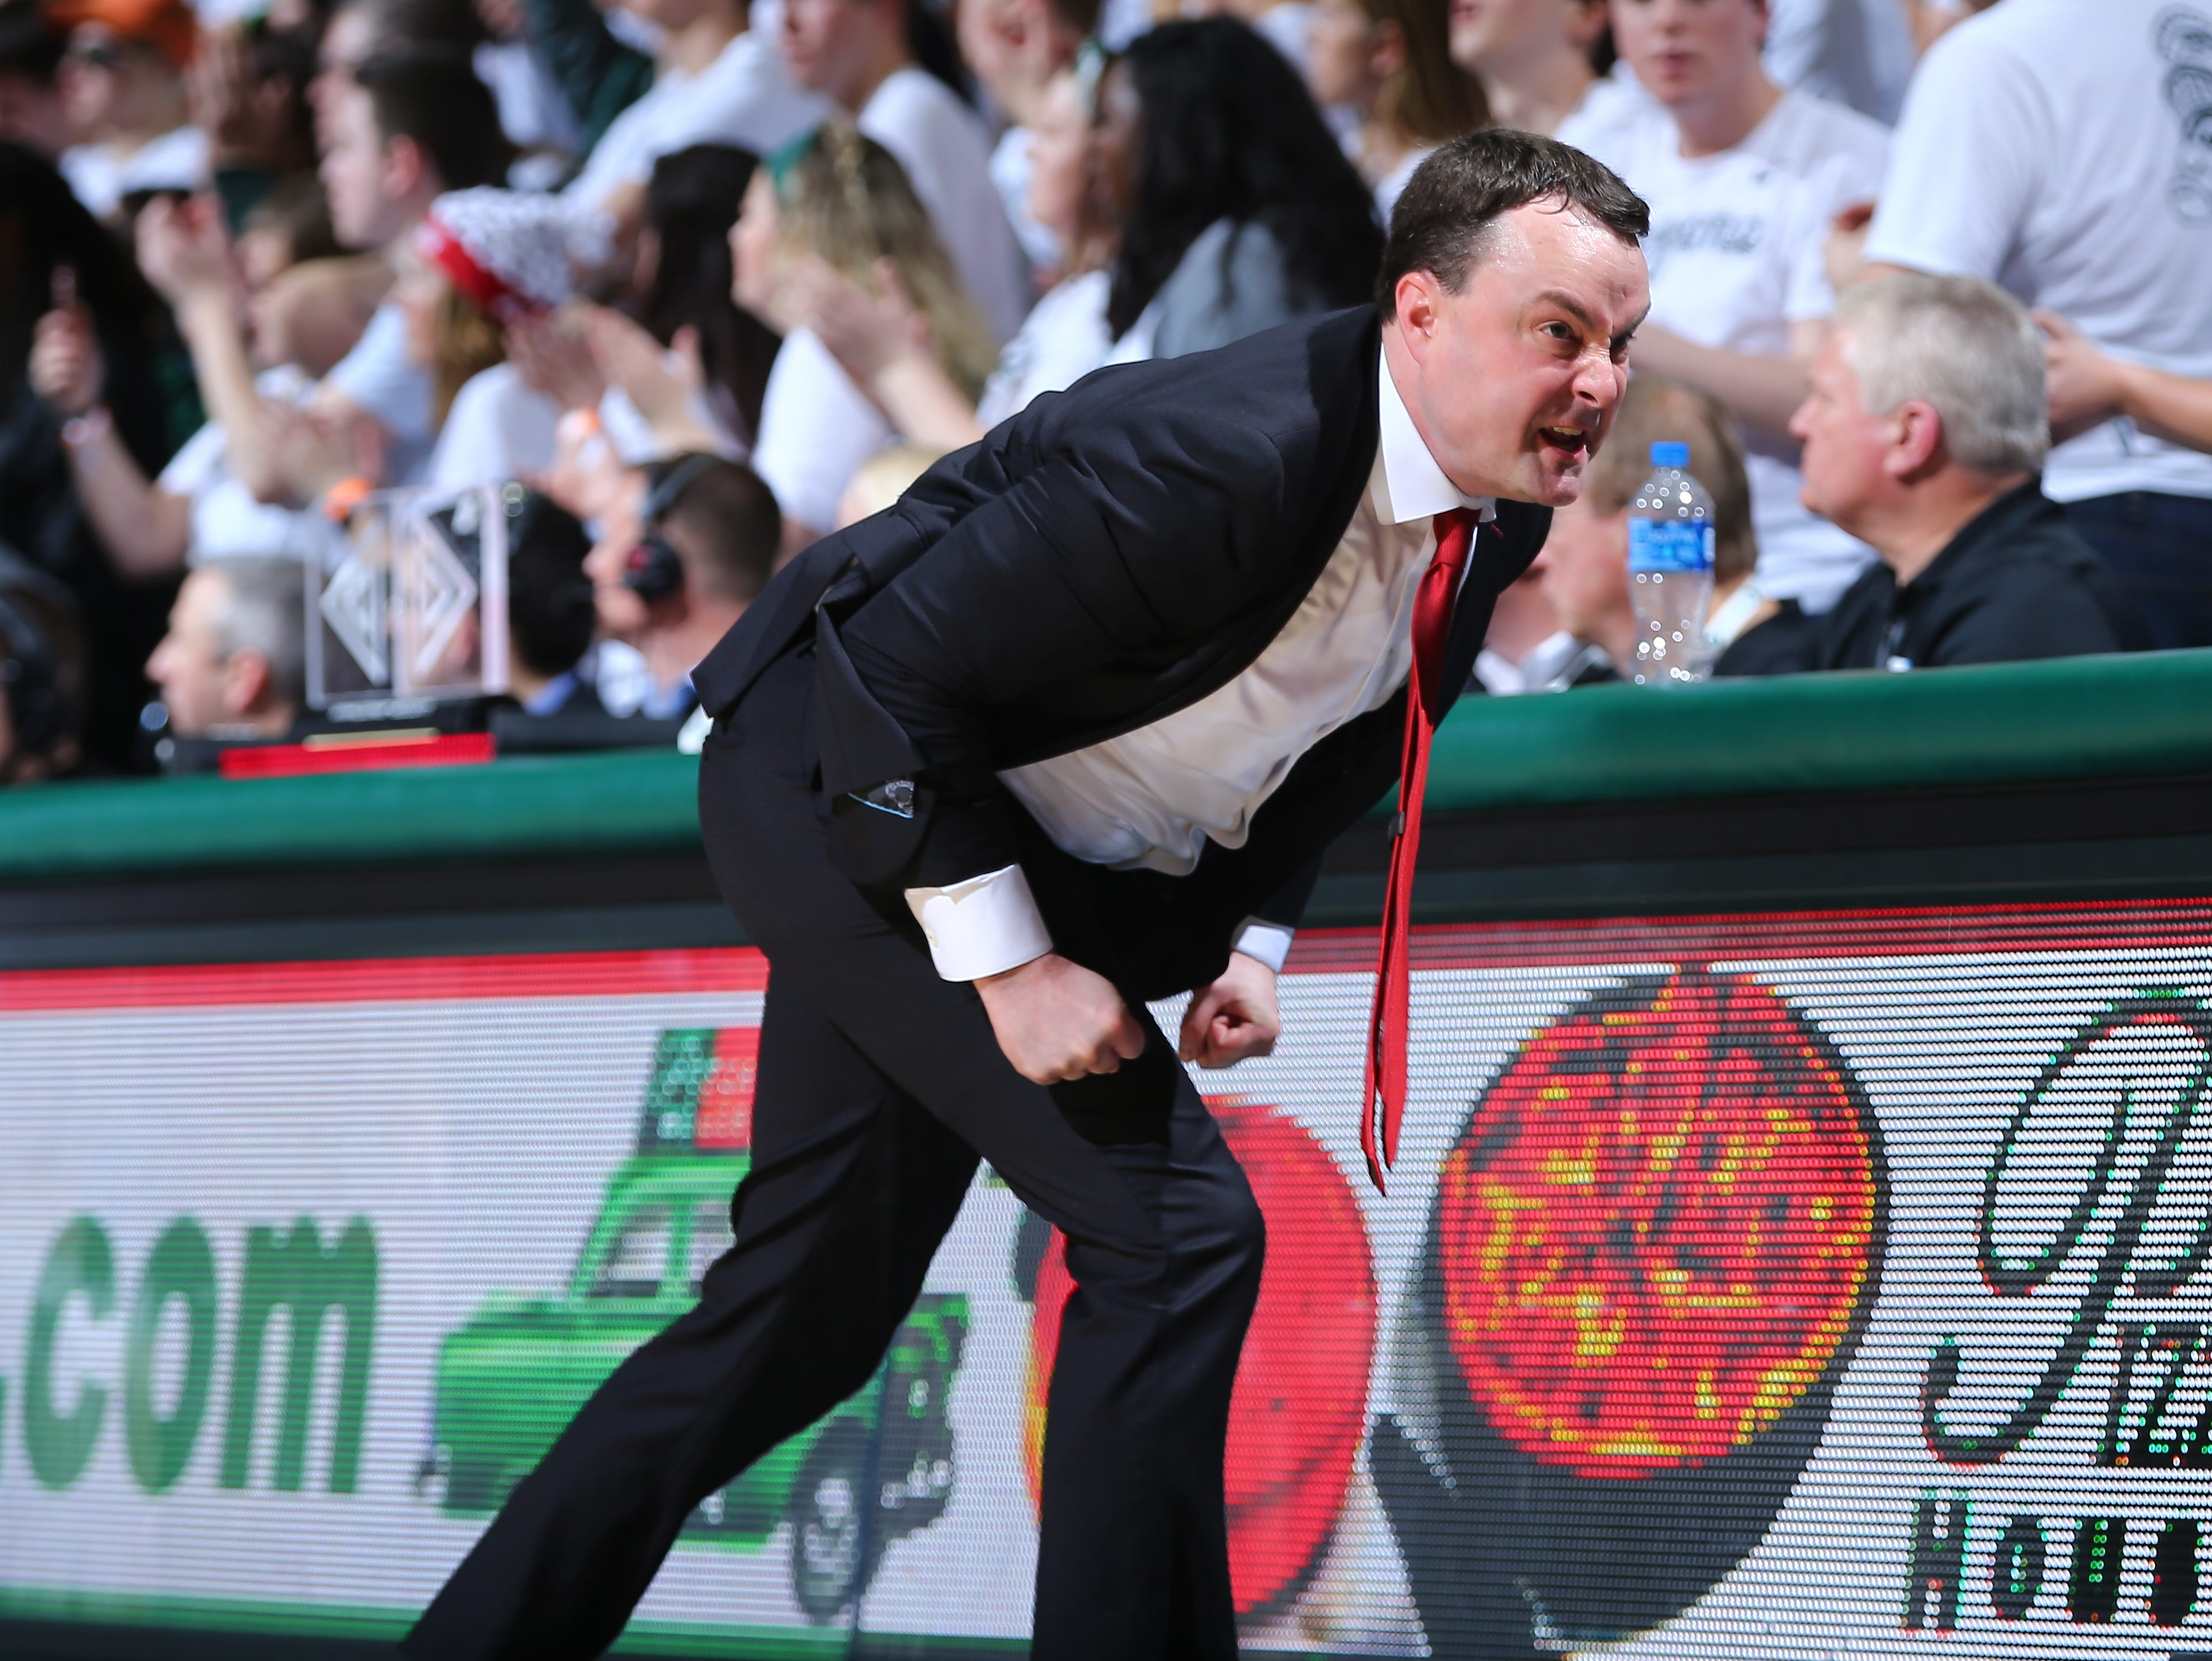 EAST LANSING, MI - FEBRUARY 02: Head coach Mark Archie Miller of the Indiana Hoosiers reacts during a game against the Michigan State Spartans in overtime at Breslin Center on February 2, 2019 in East Lansing, Michigan. (Photo by Rey Del Rio/Getty Images)